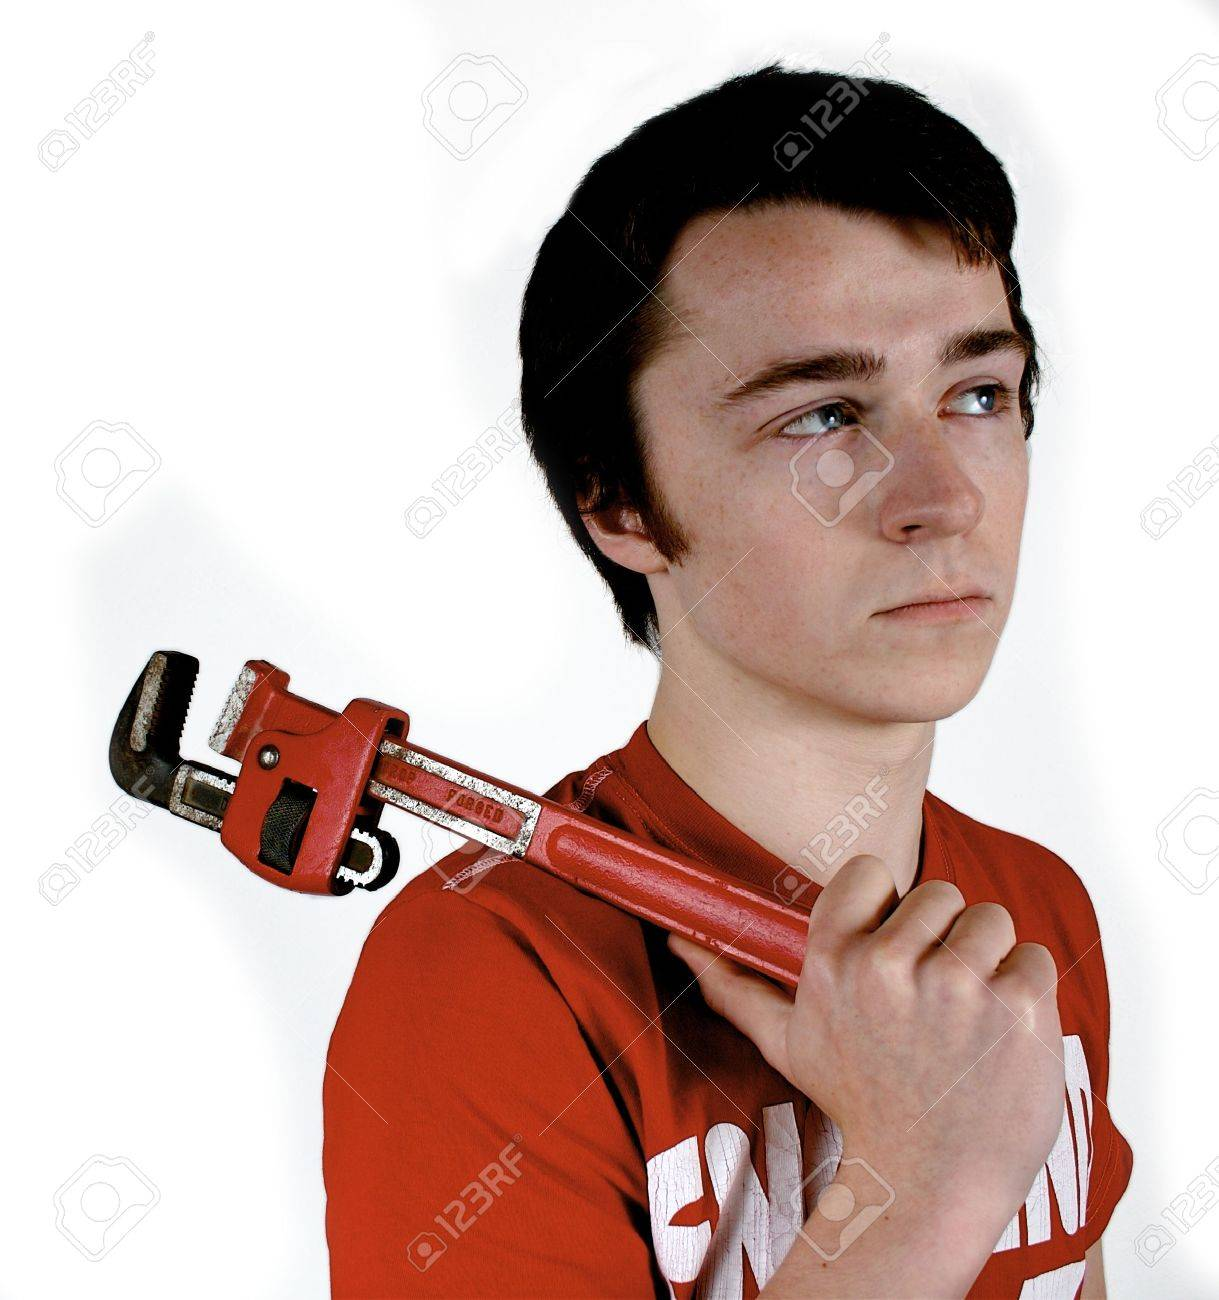 Young worker holding a wrench thinking about the job to be done Stock Photo - 2405434